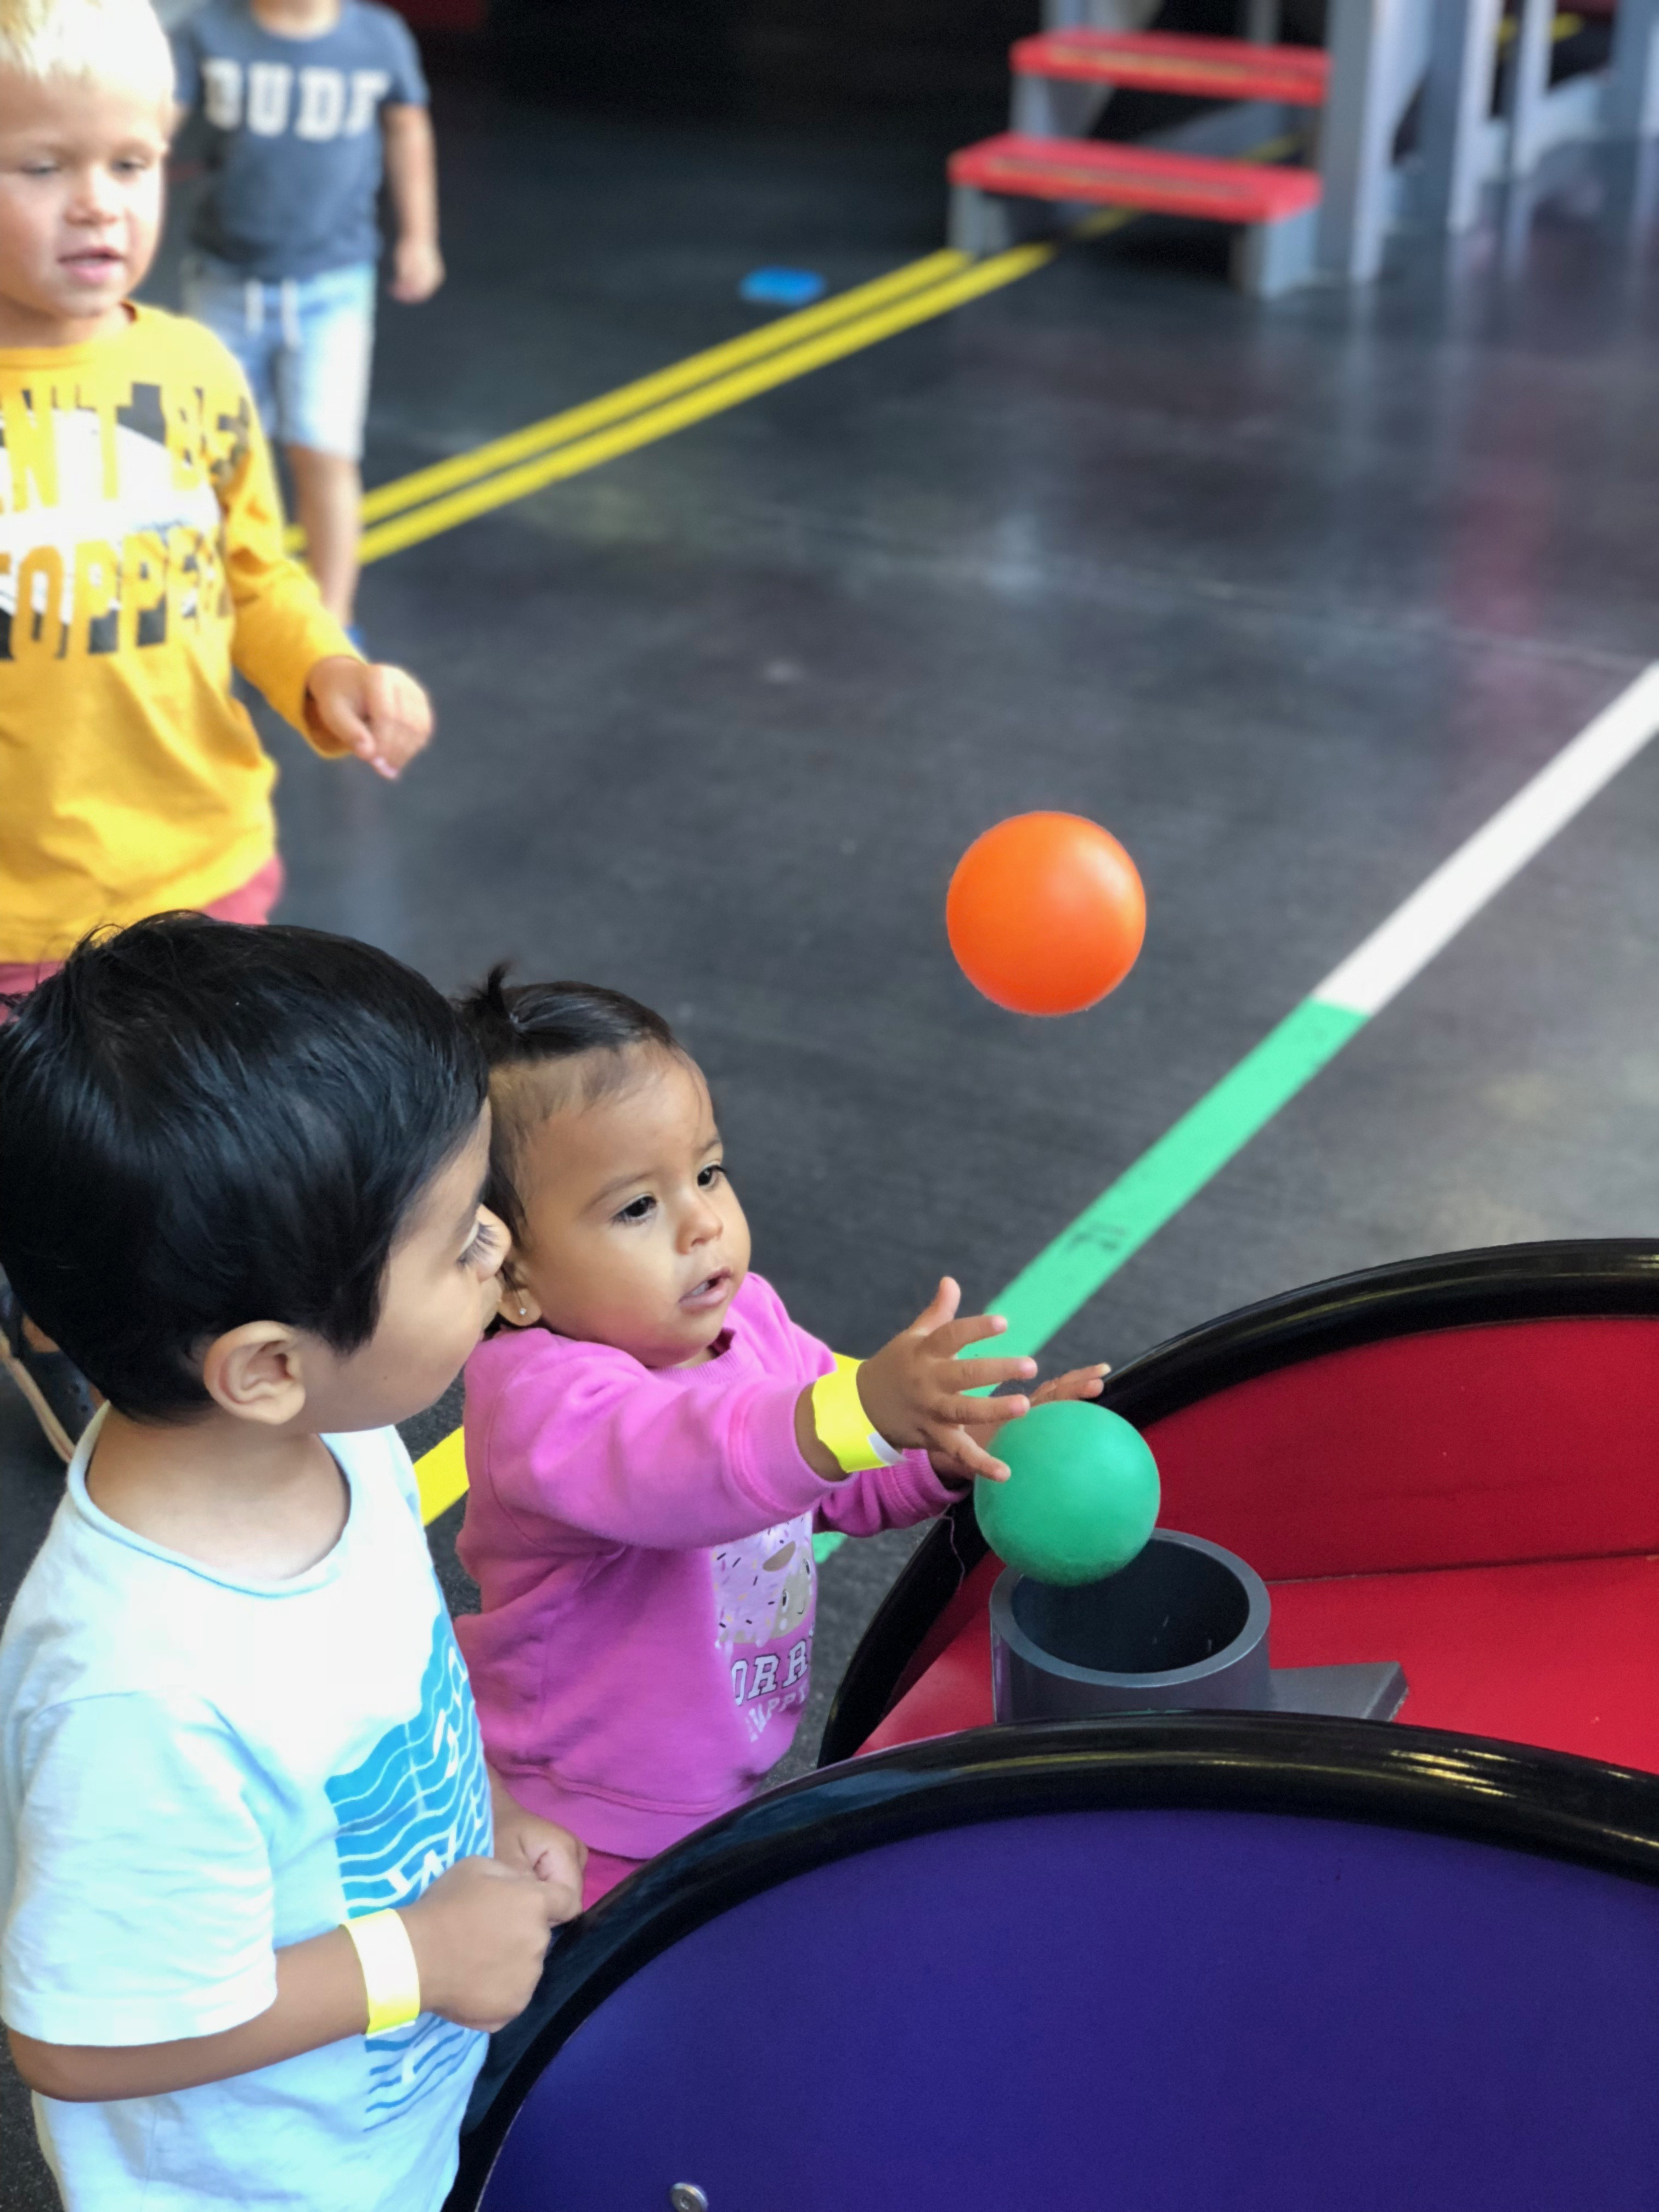 Families take a Day Trip to the Children's Discovery Museum